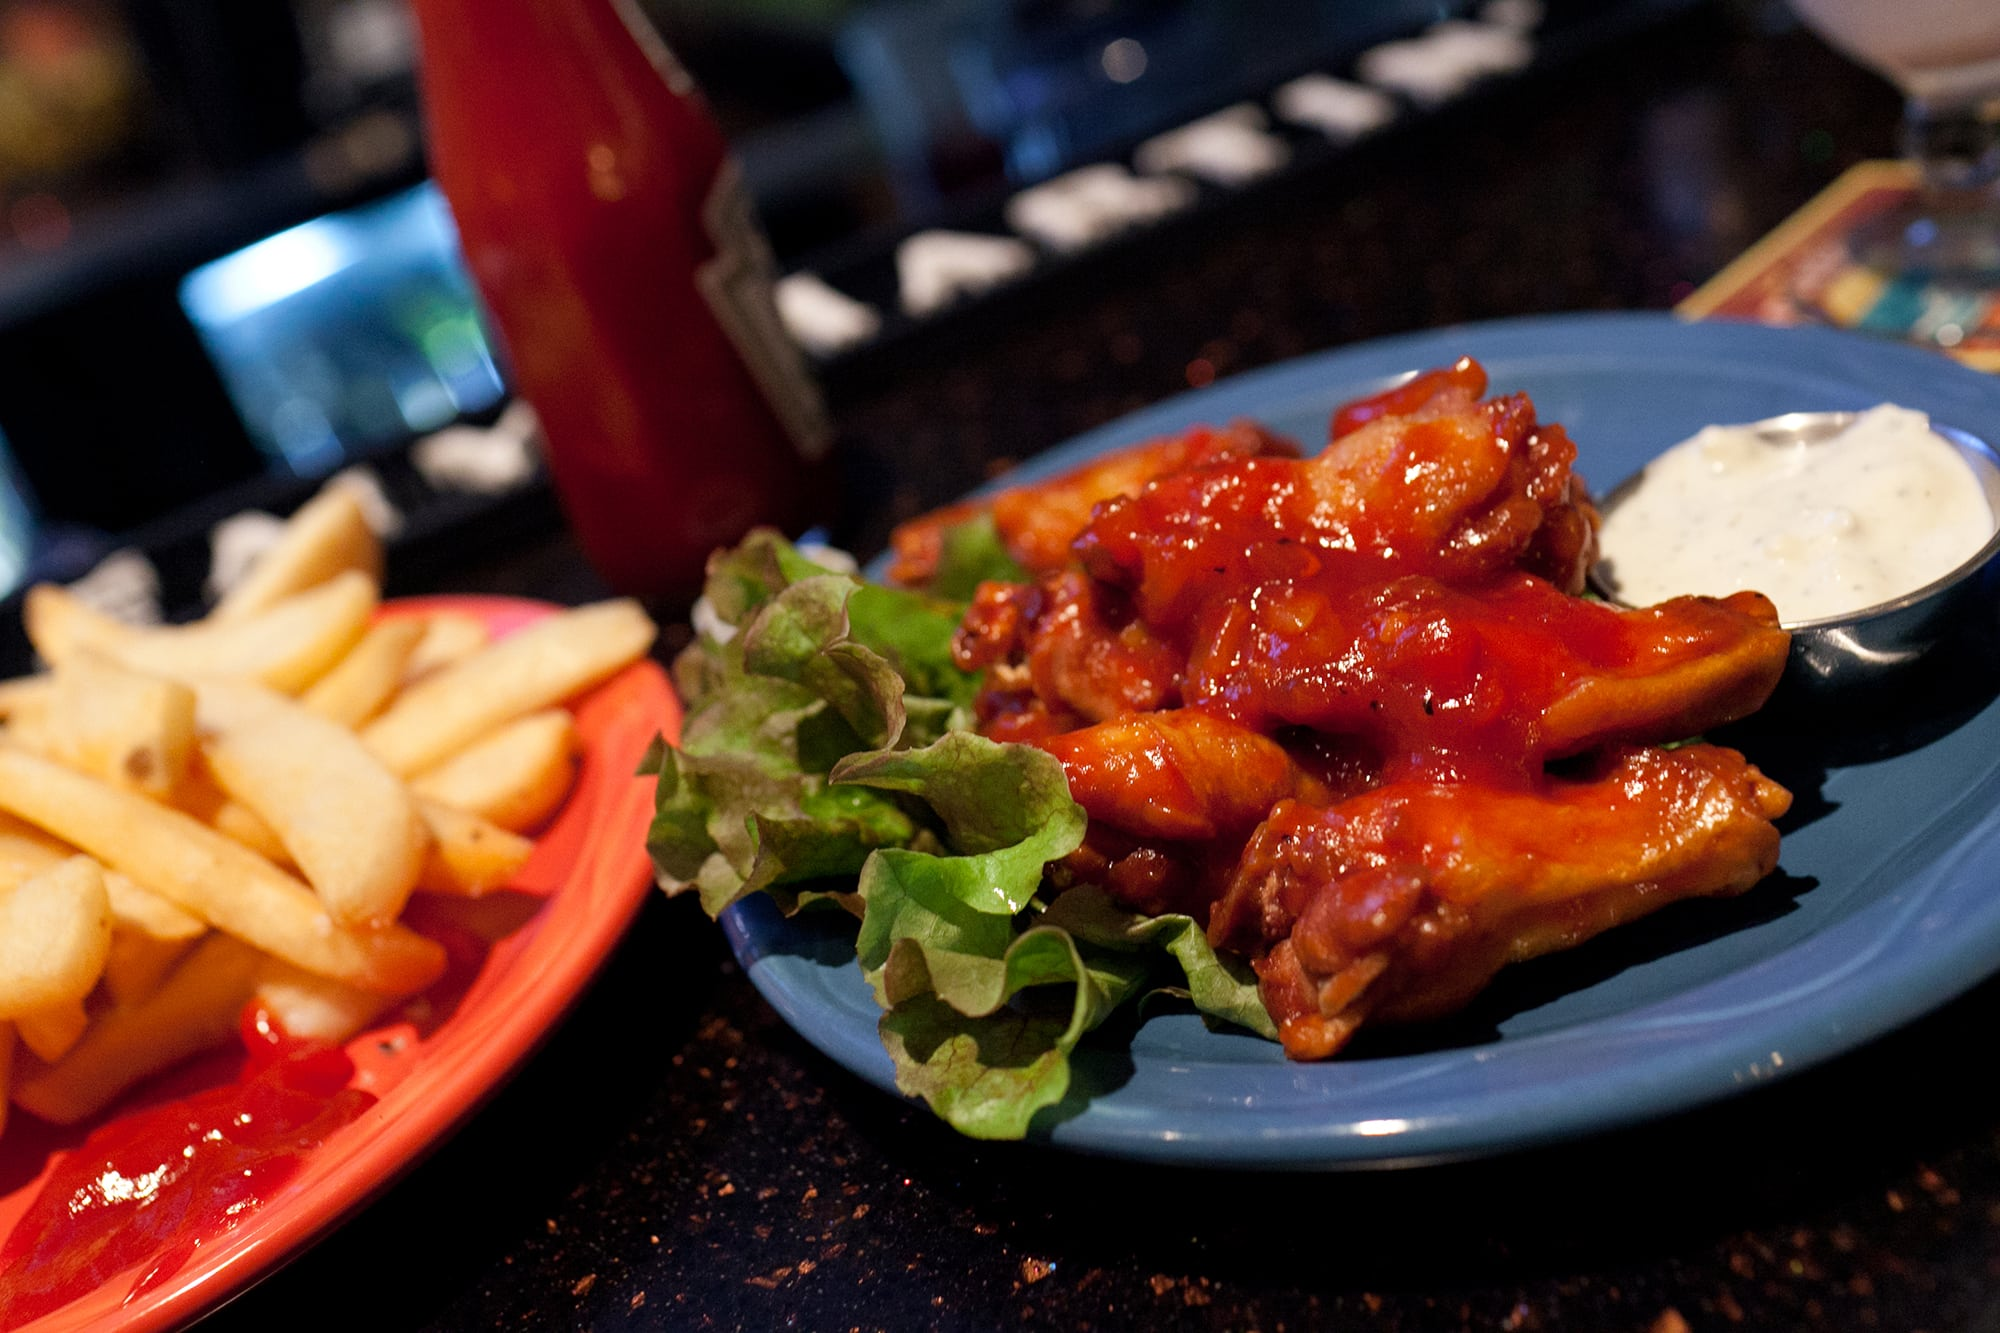 Pineapple bbq wings at Pineapples in Hilo on the Big Island in Hawaii.